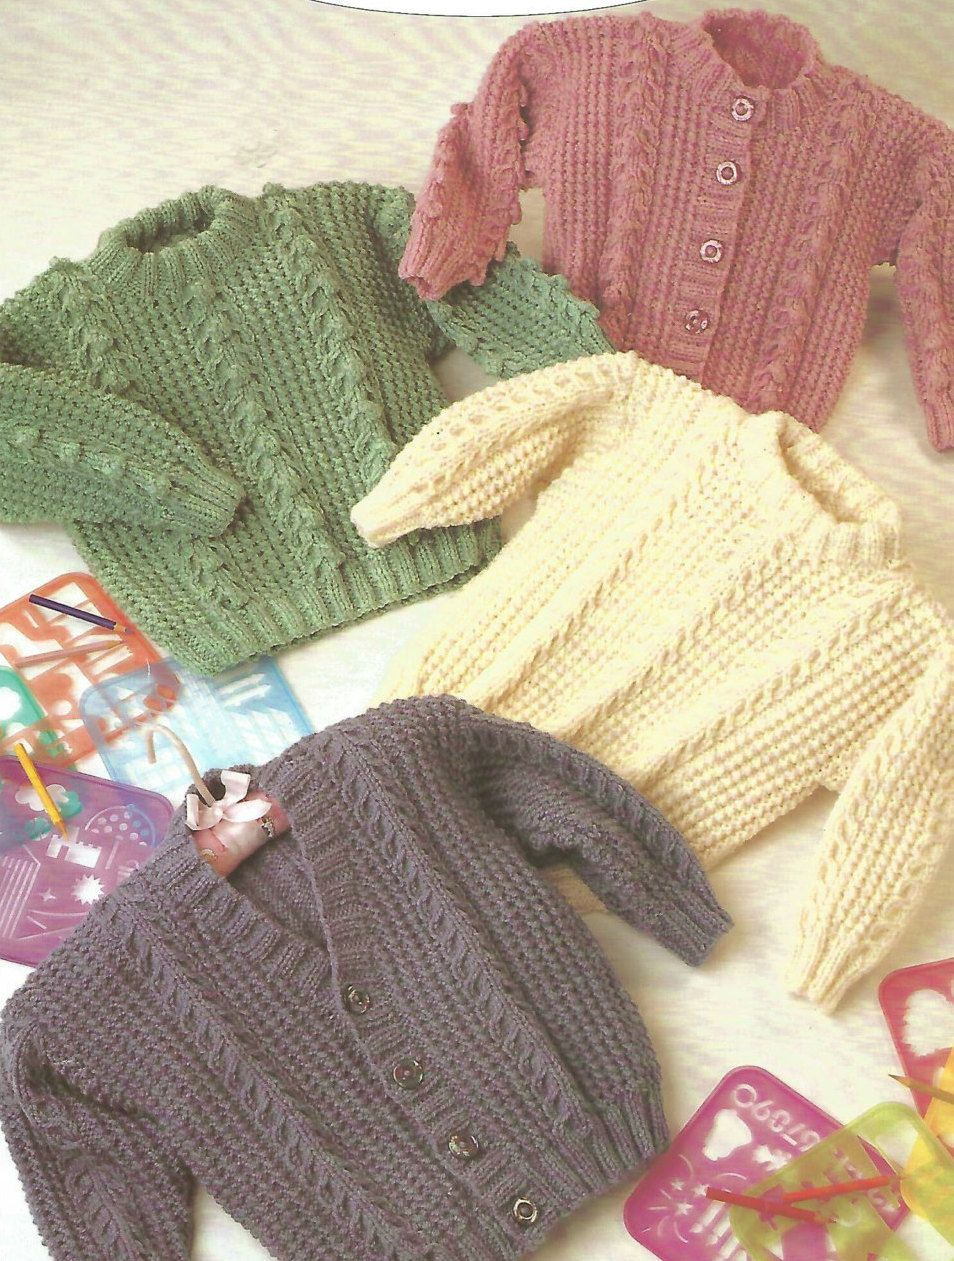 Childrens Aran Knitting Patterns Knitting Pattern Babies Children Aran Fisherman Ply Designs Ba